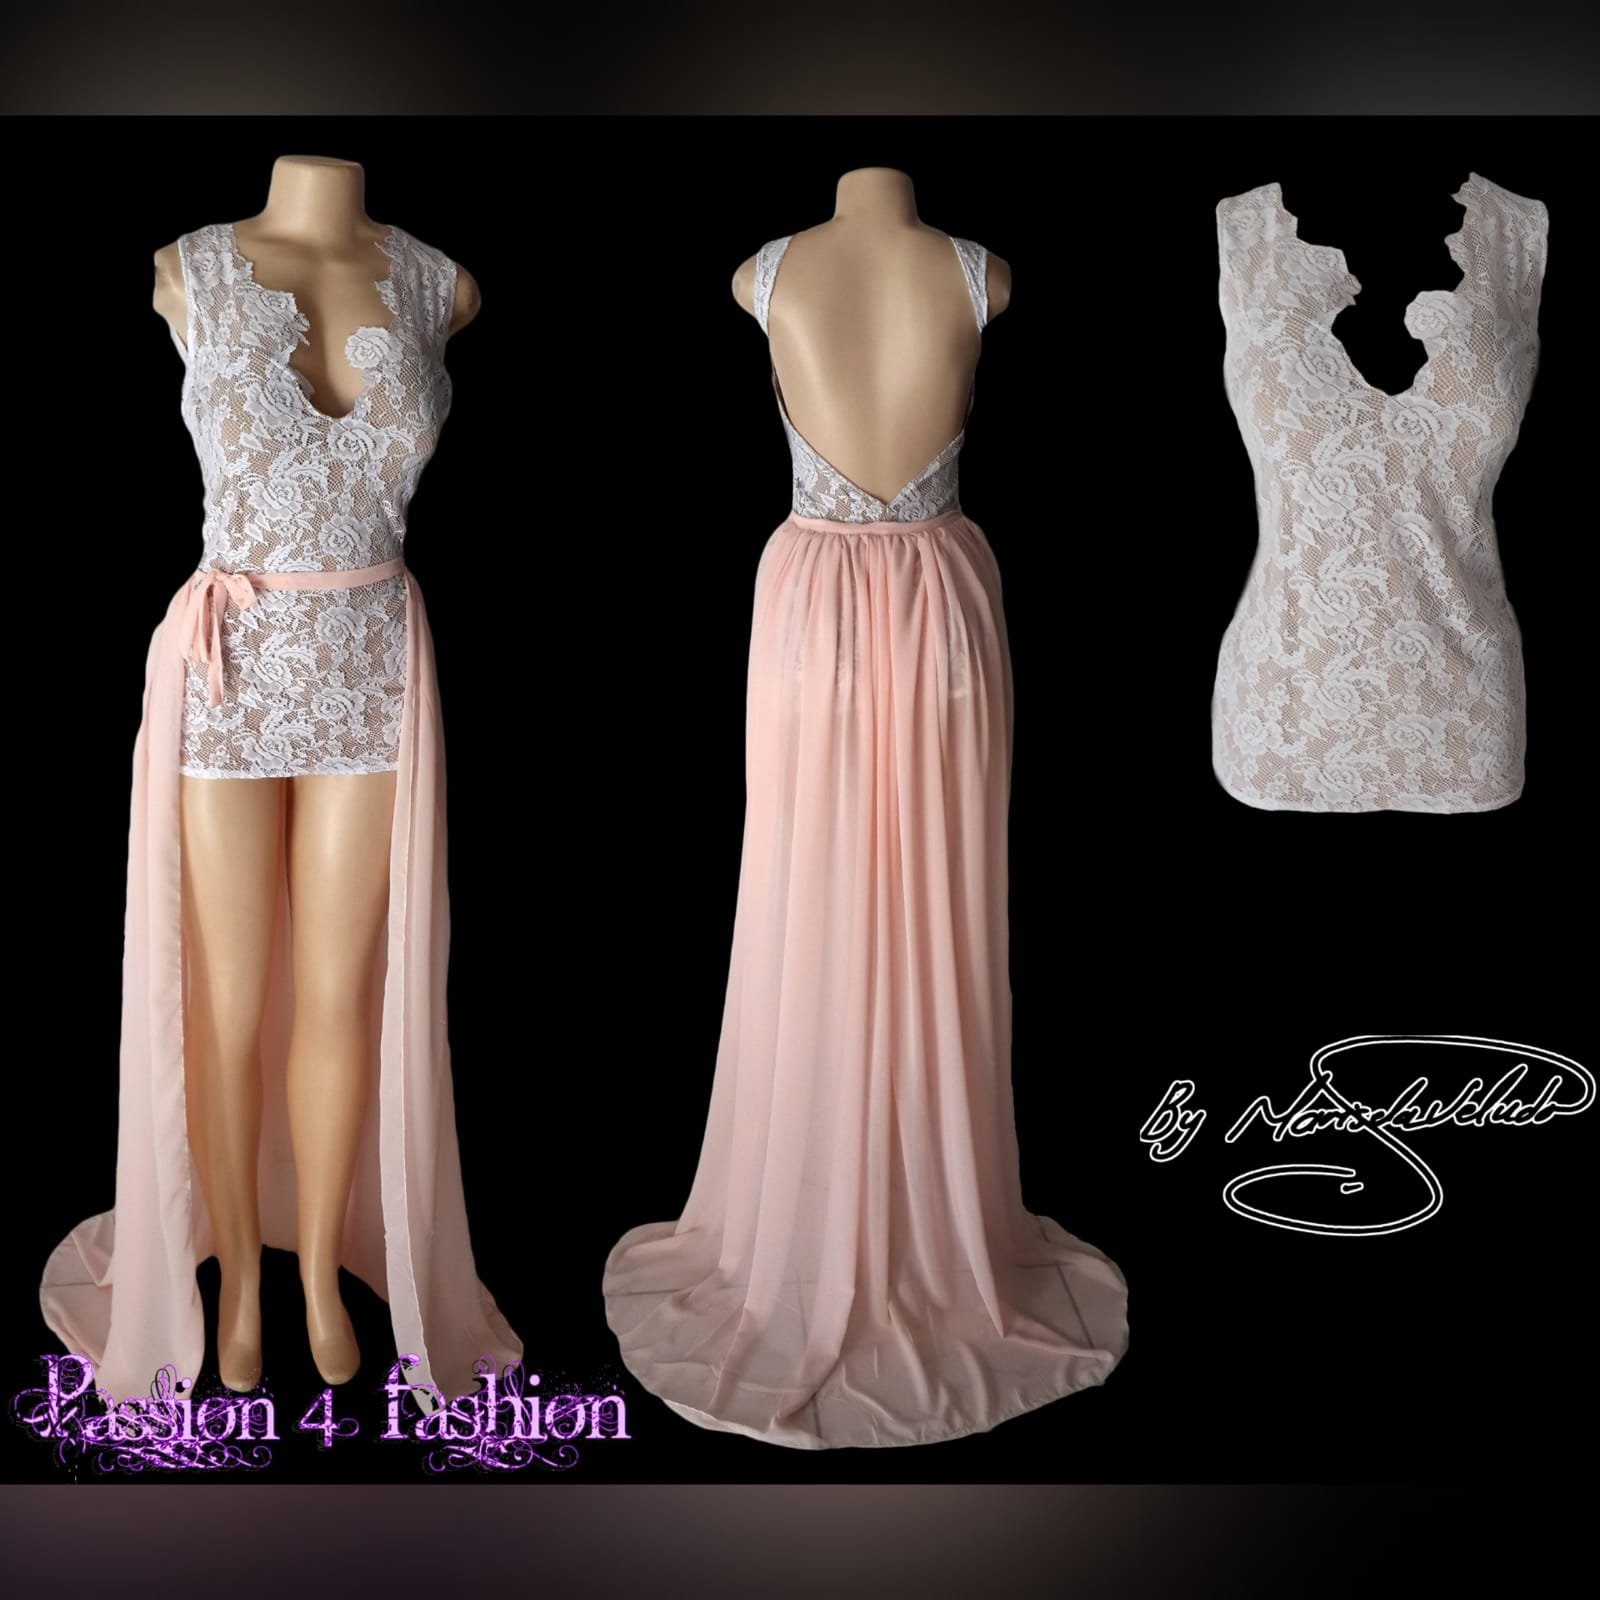 Peach and white 2 piece evening dress 5 peach and white 2 piece evening dress. Mini lace dress with a low open back, with a detachable back peach train